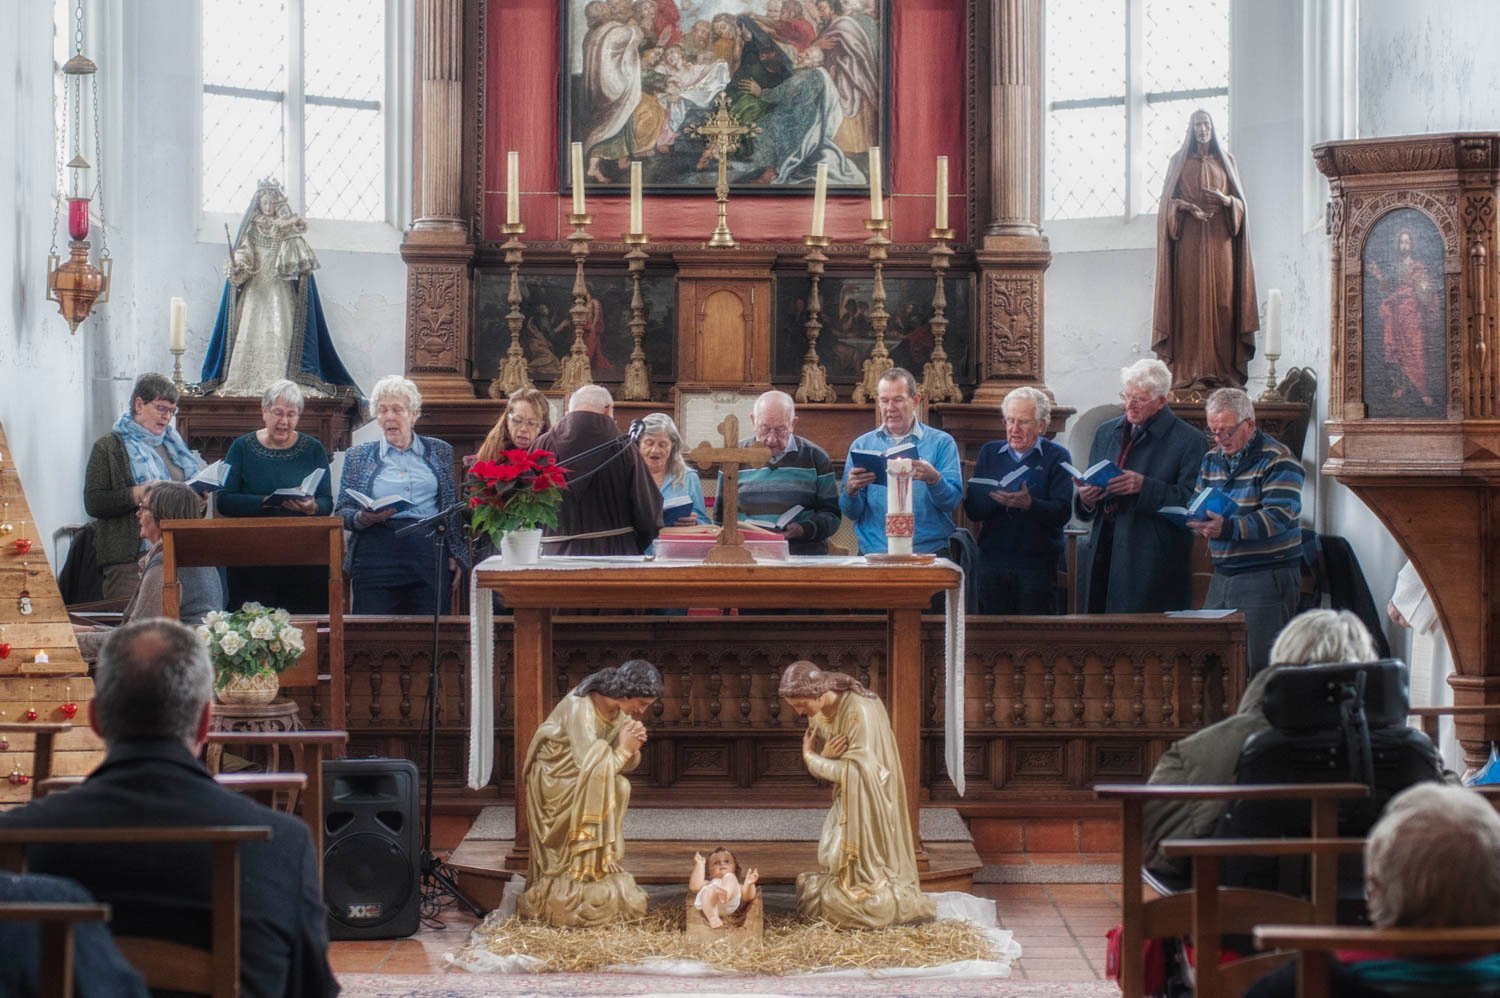 Sint Lucia viering